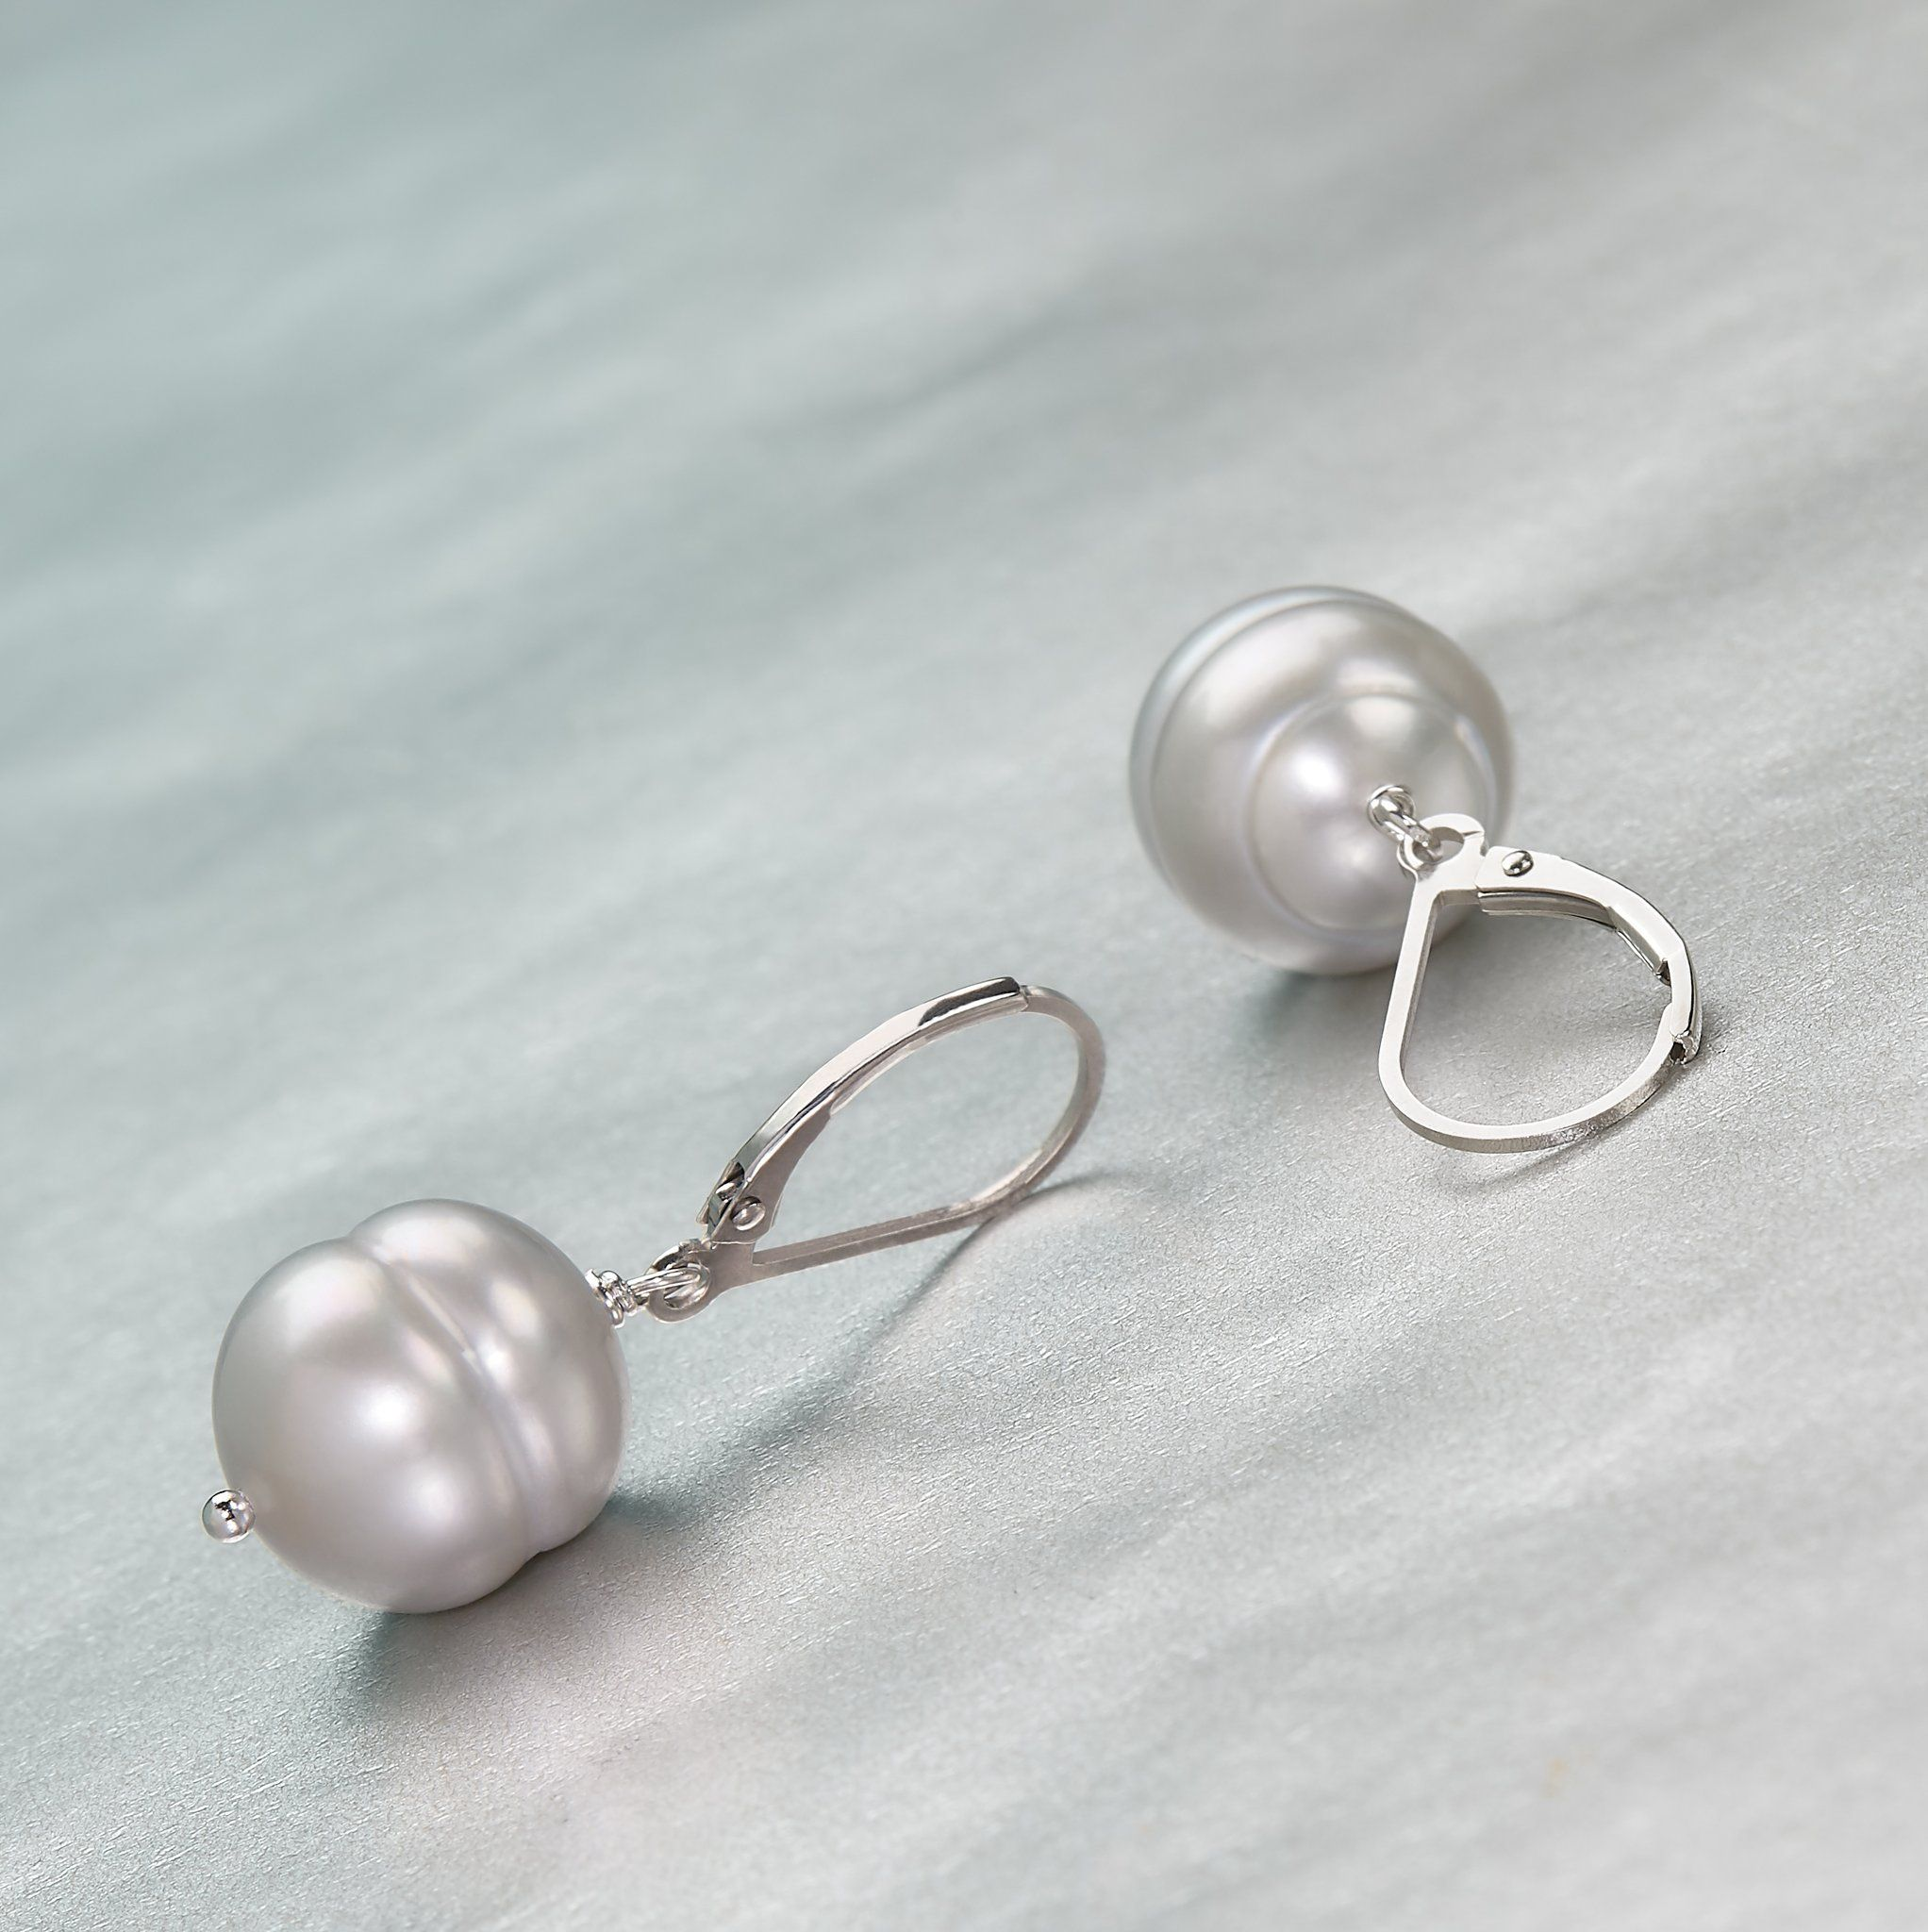 Honora Pearls Earrings A Pair Of Sterling Silver Featuring Oval Shaped Cultured These Timeless Accessories Add Rous Feel To